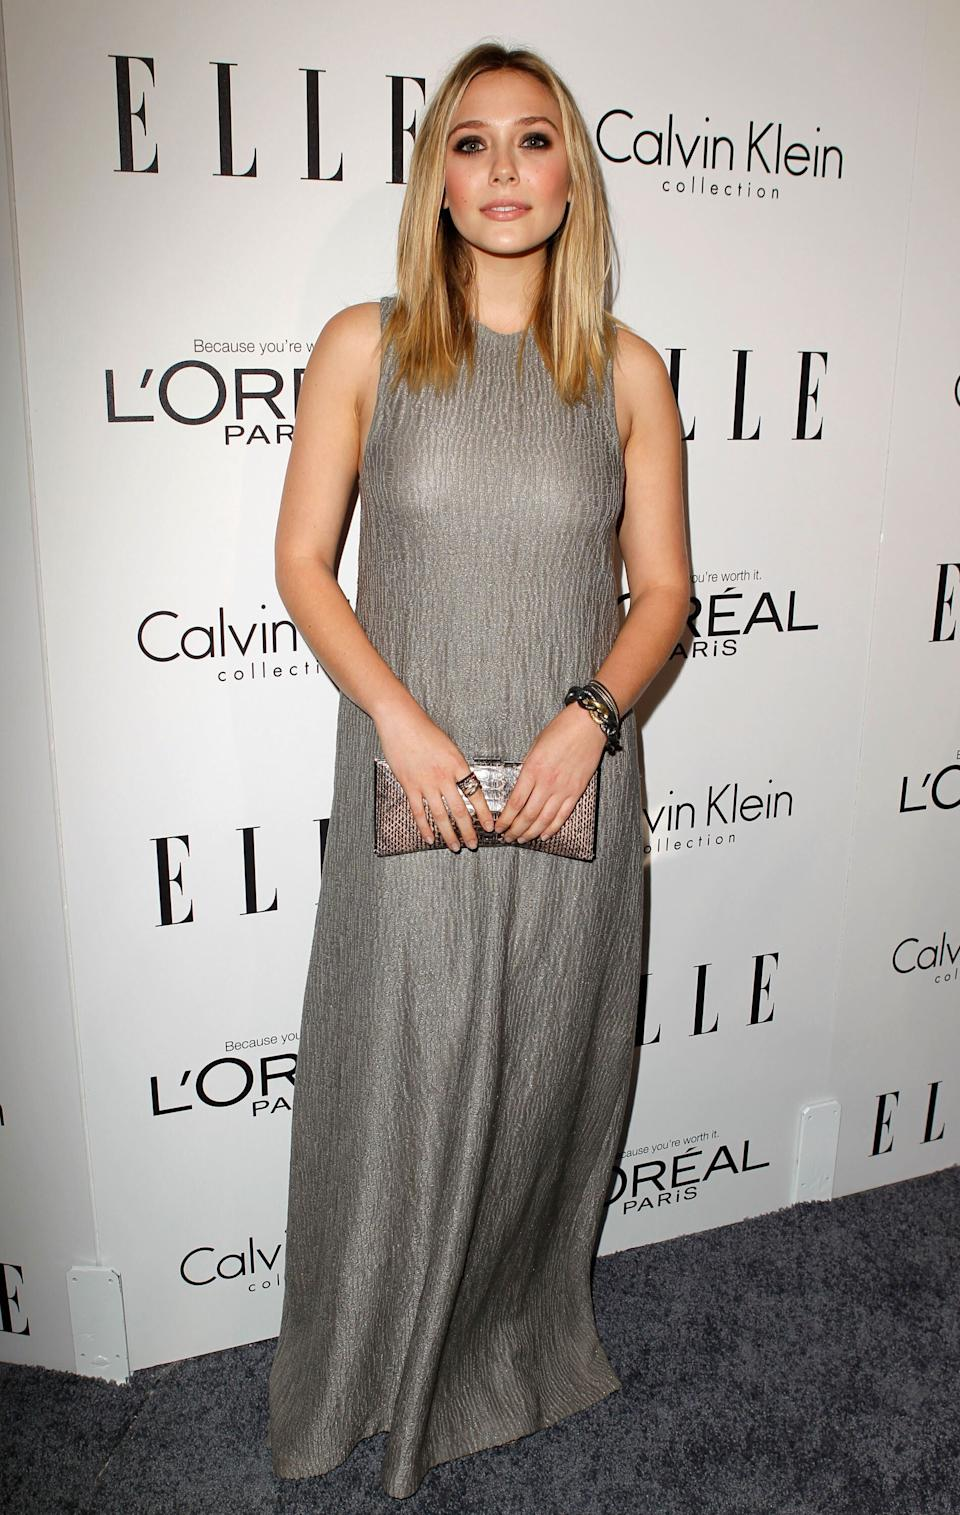 Olsen at ELLE's 18th Annual Women in Hollywood Tribute in Beverly Hills on Oct. 17, 2011.